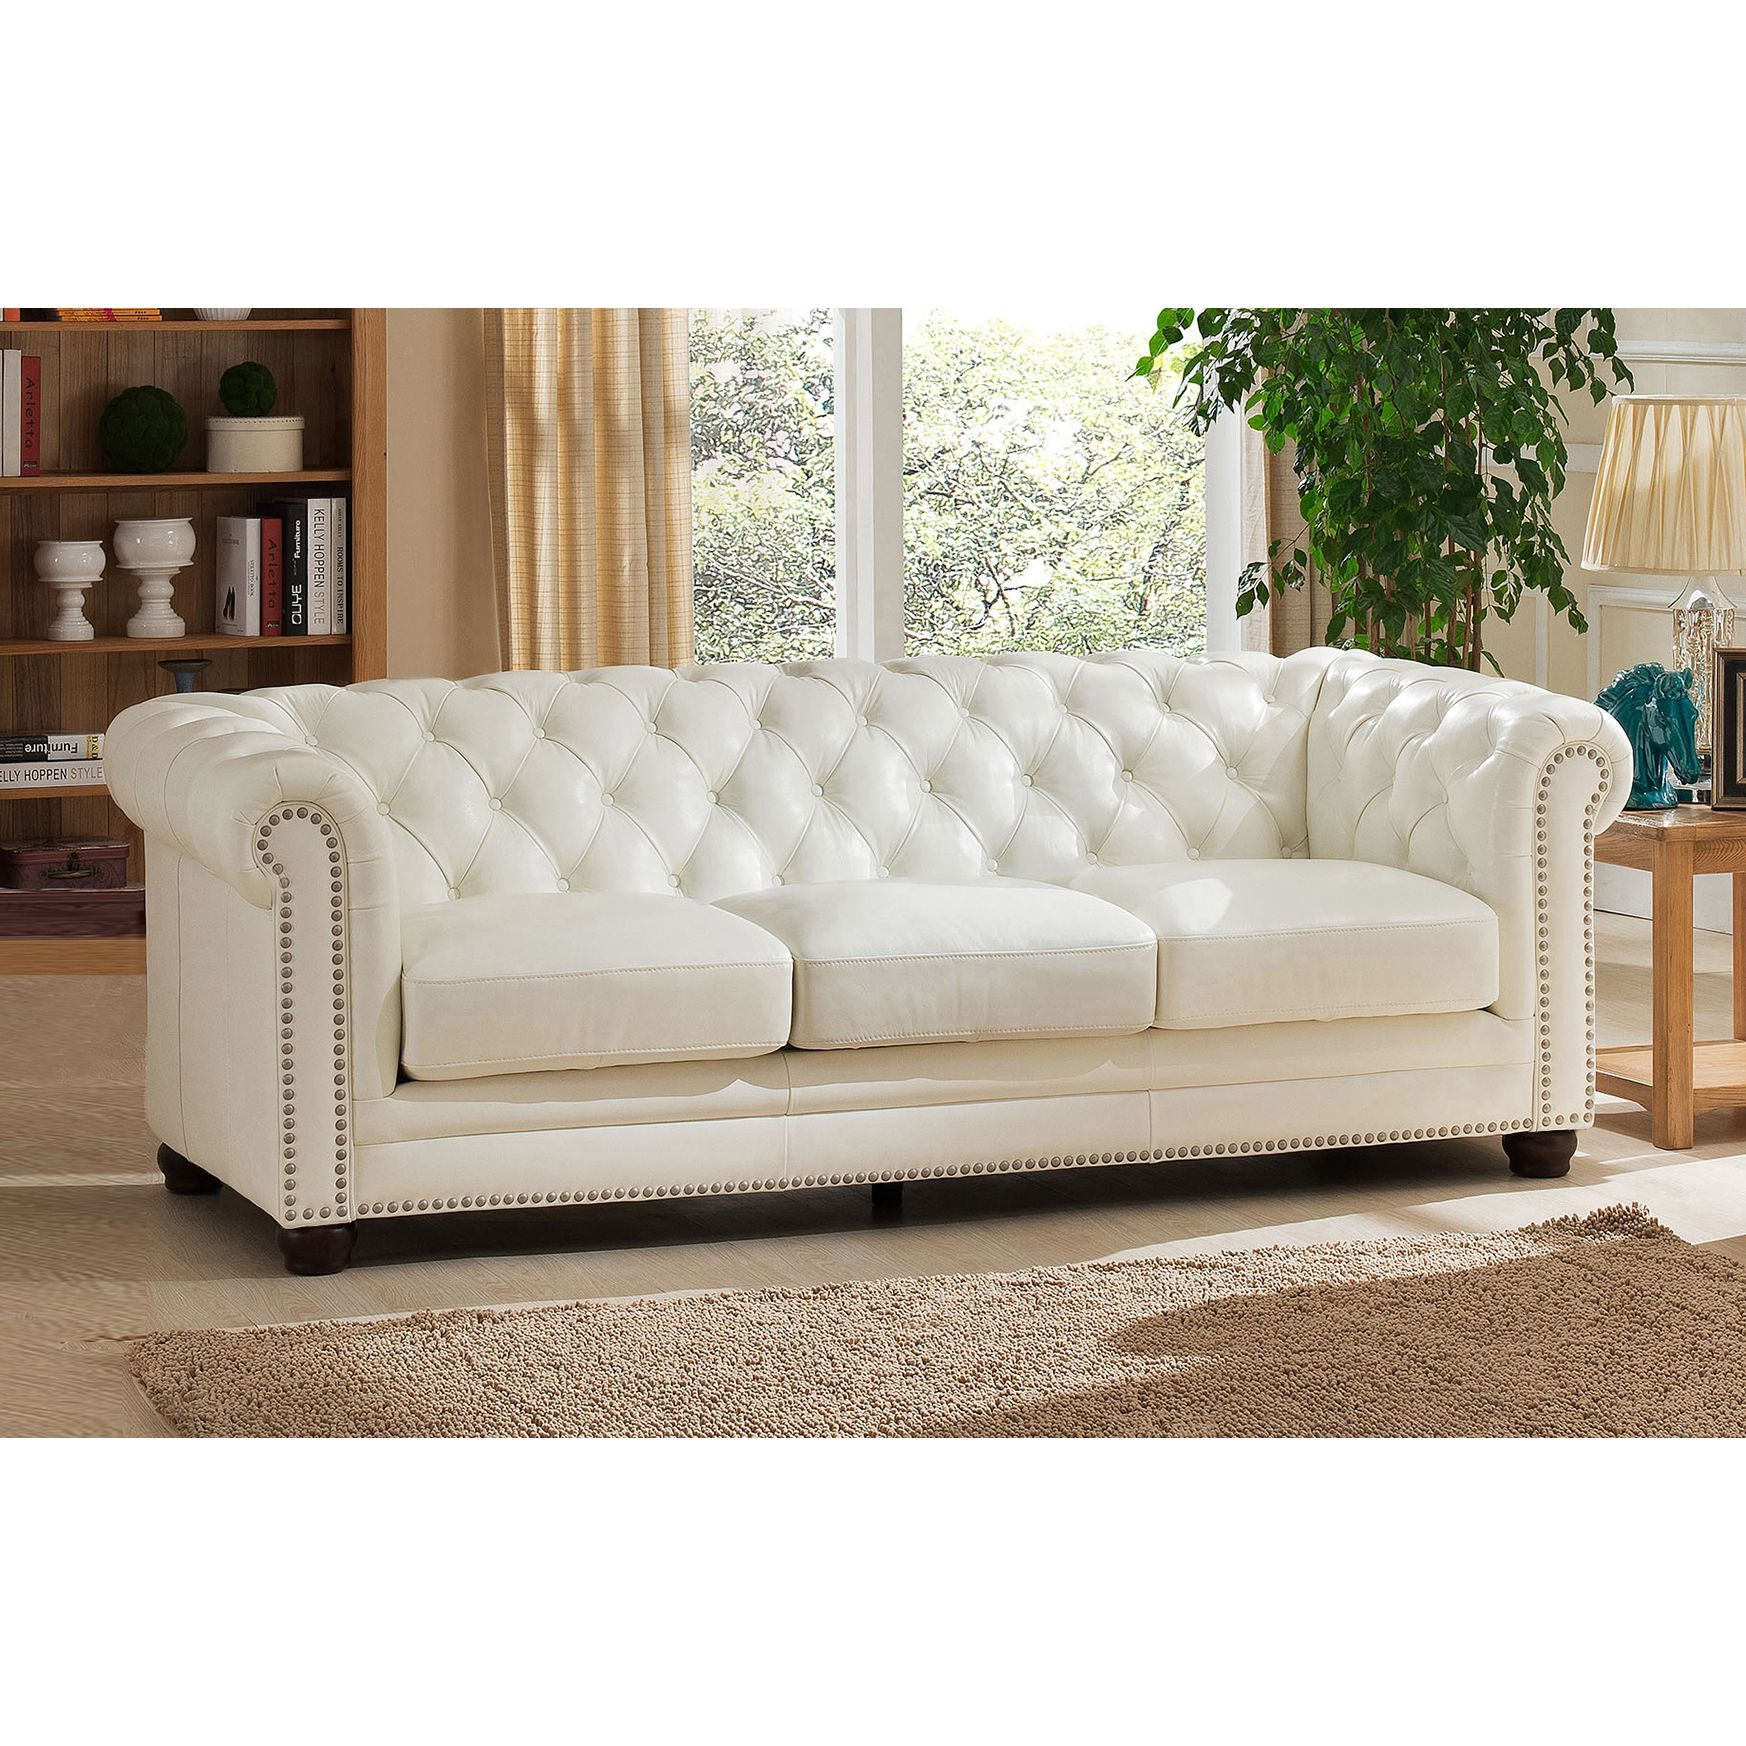 Nashville White Genuine Leather Chesterfield Sofa With Feather Down Seating Coja Leather Sofa Sofa Deals Best Leather Sofa